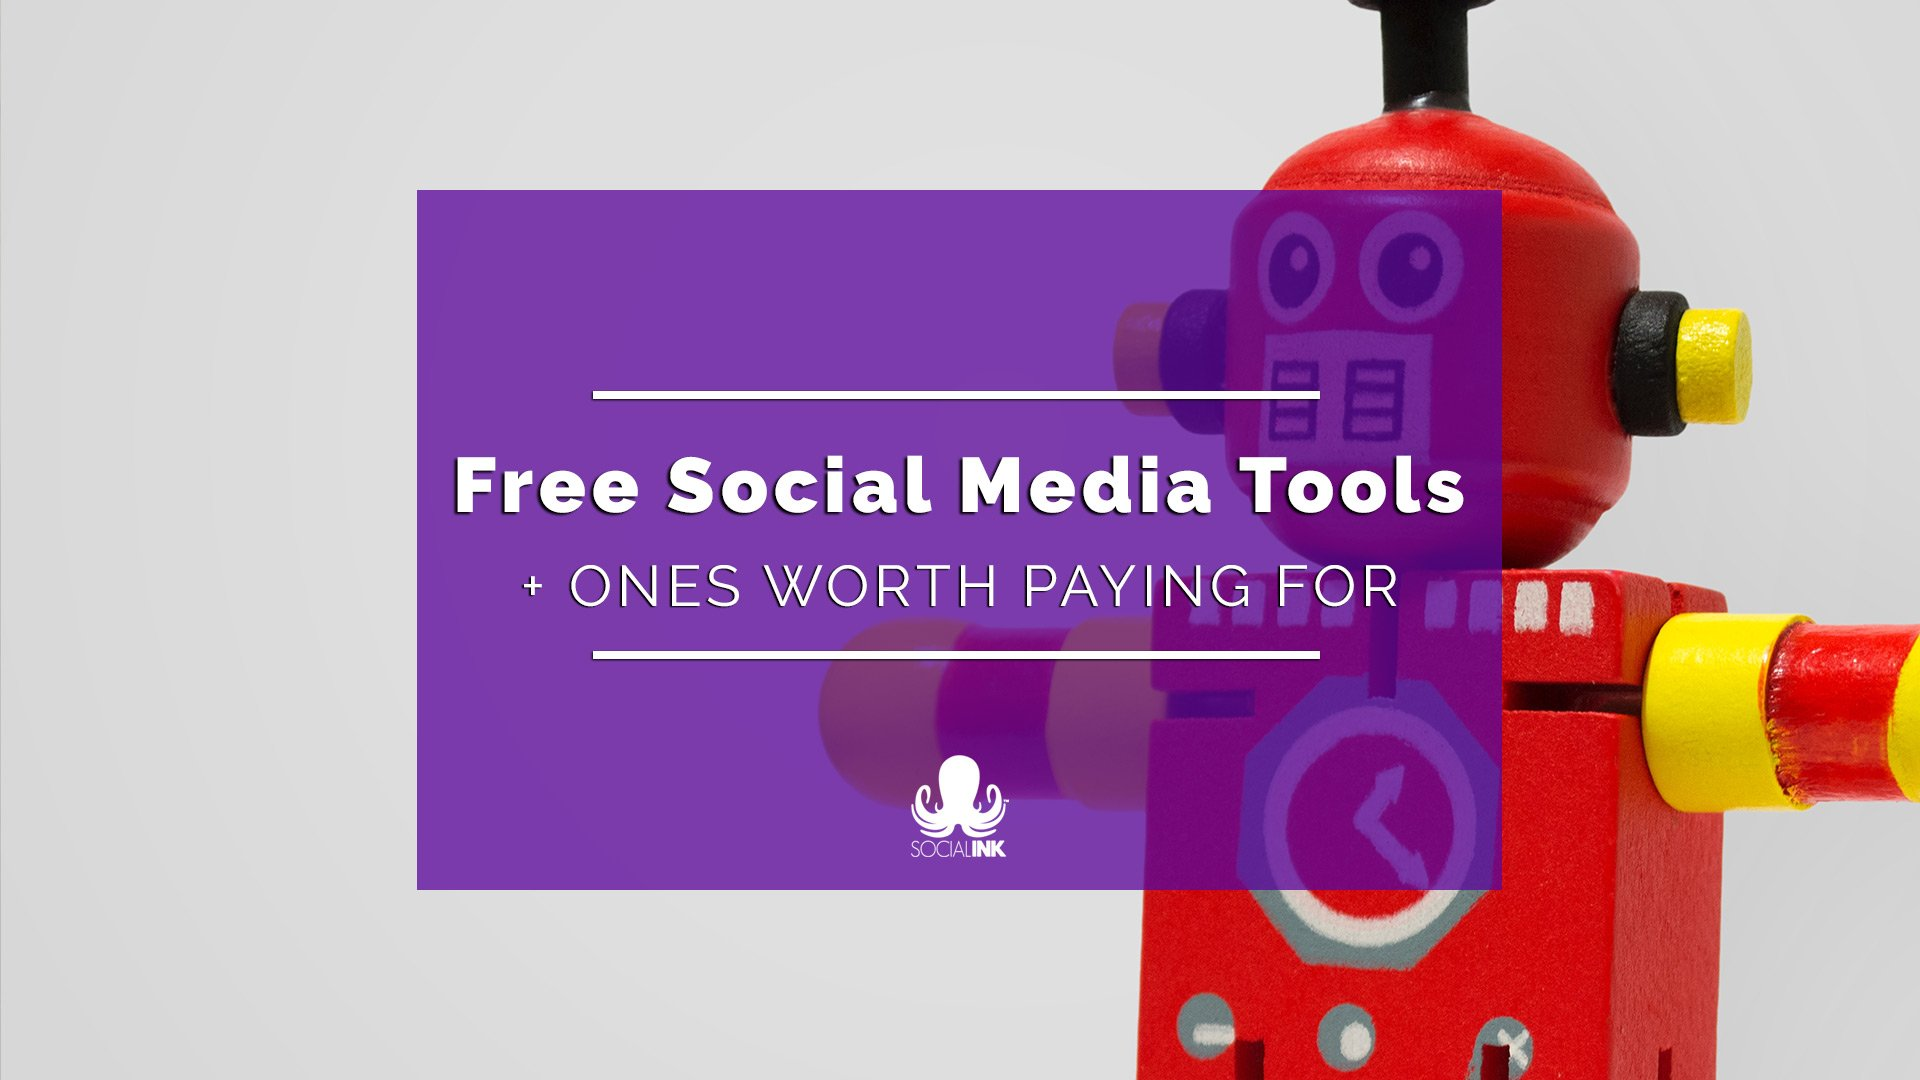 6 Free Social Media Tools & 4 Worth Paying For